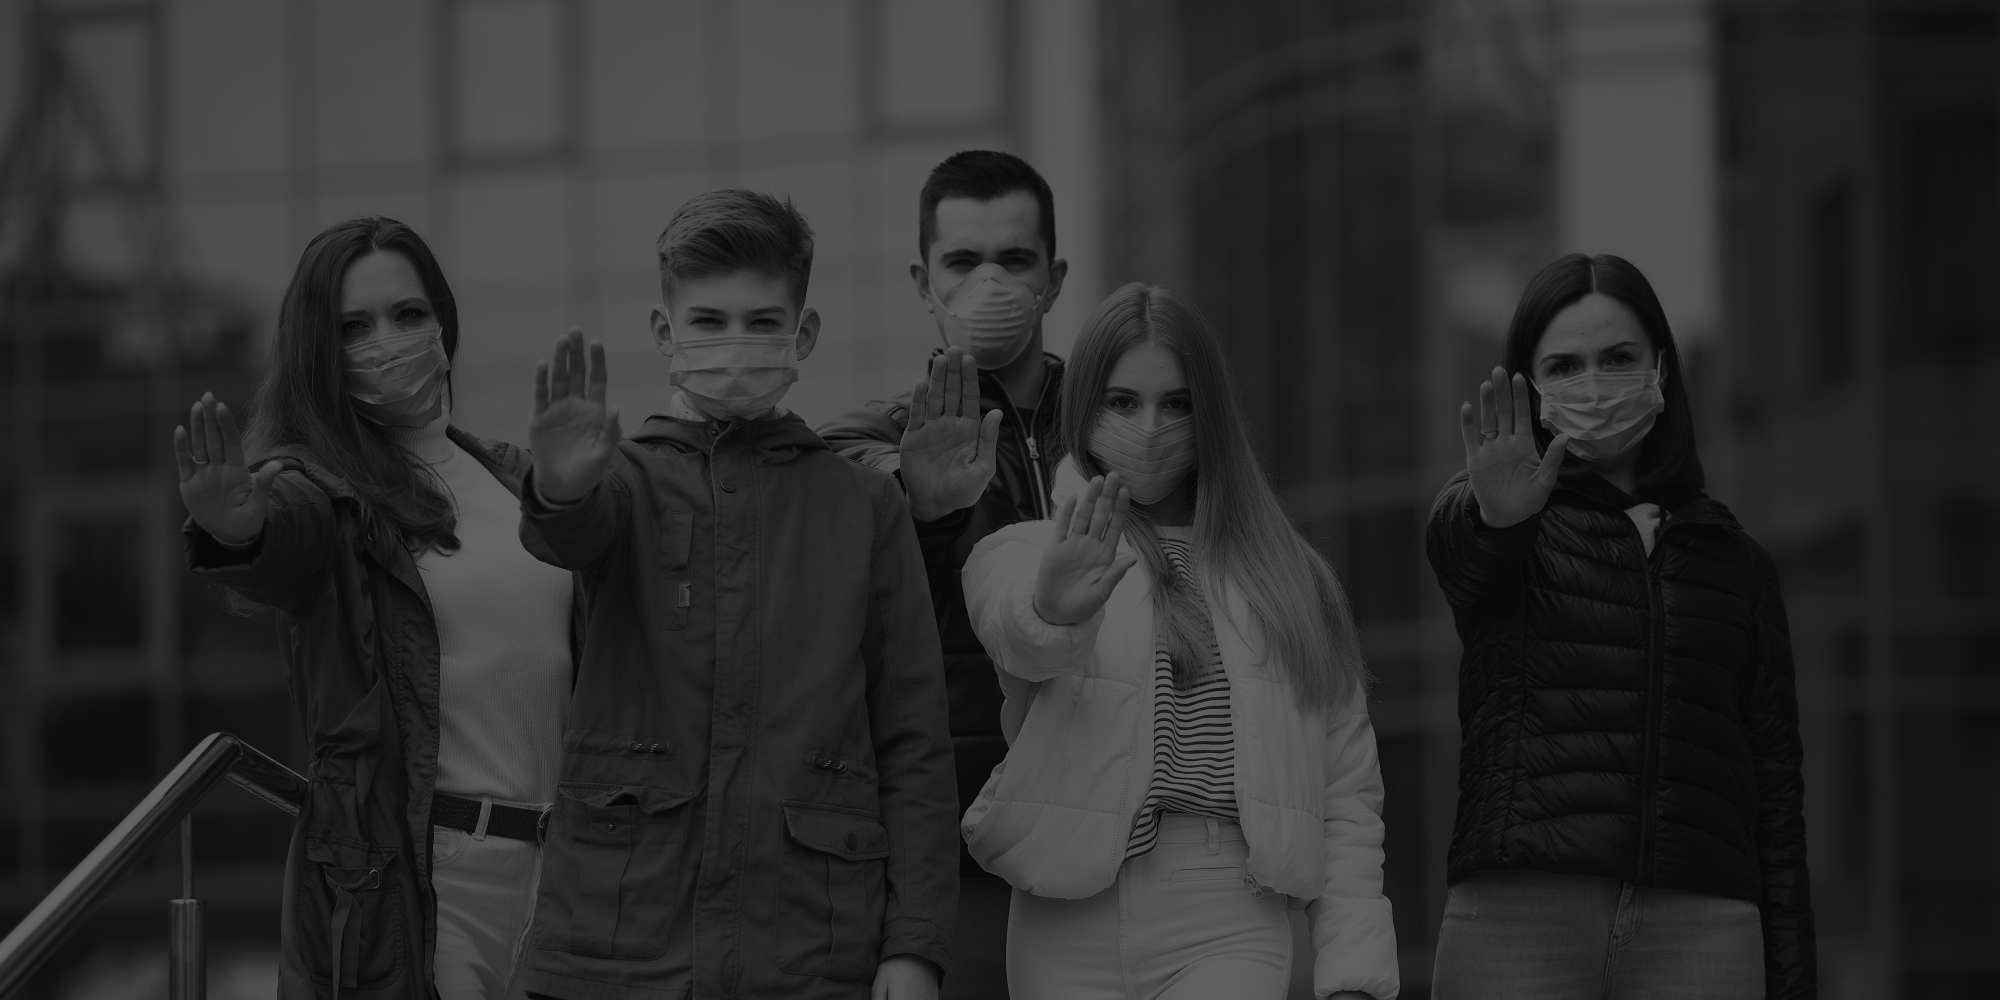 war-on-flu-about-us-grayscale-header-banner